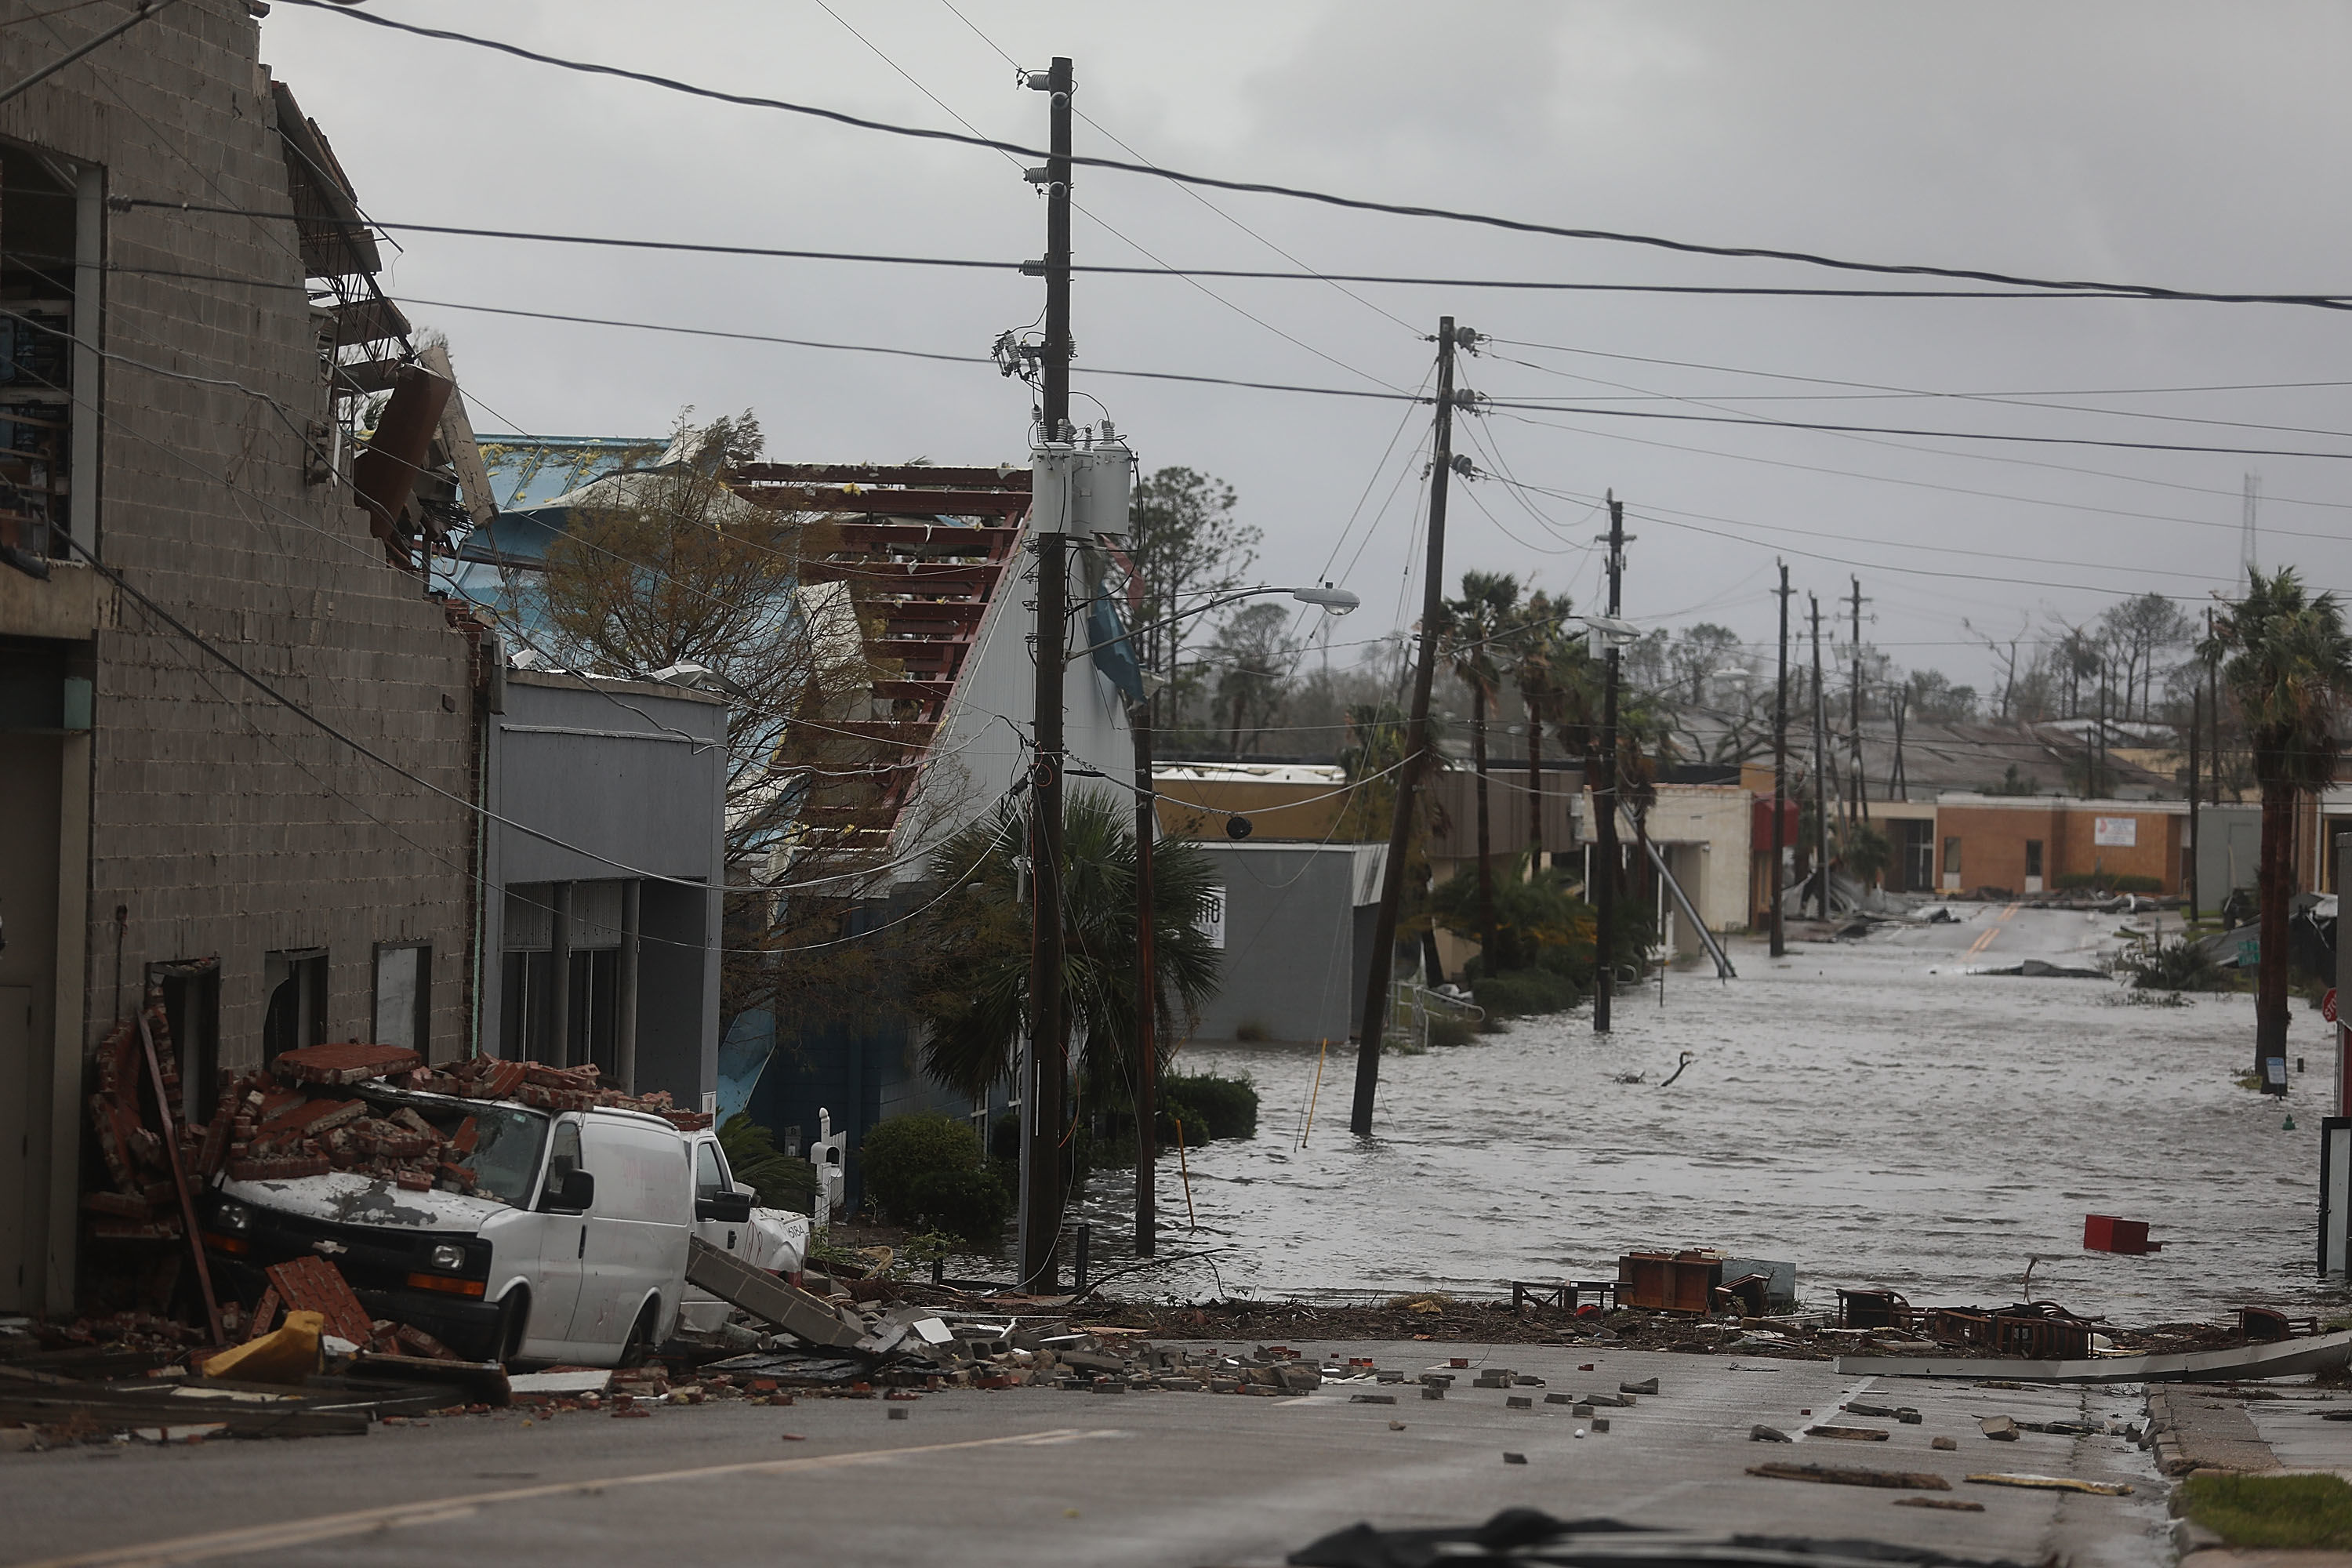 Hurricane Michael Is the Strongest Storm to Hit Florida Since 1851. Here's Why, According to Scientists